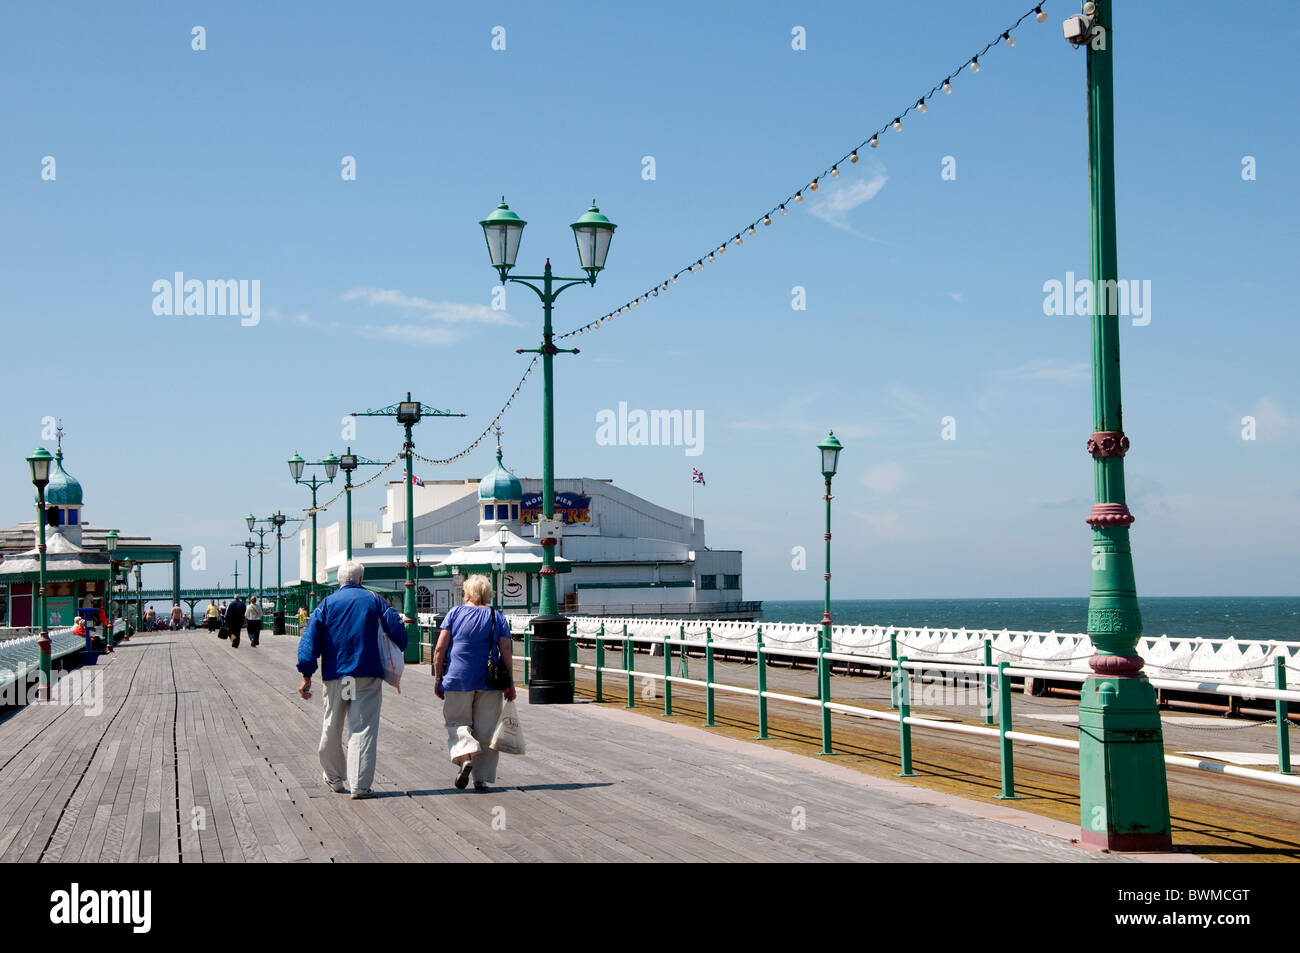 The North Pier of Blackpool on the coast of Lancashire in Northern England - Stock Image